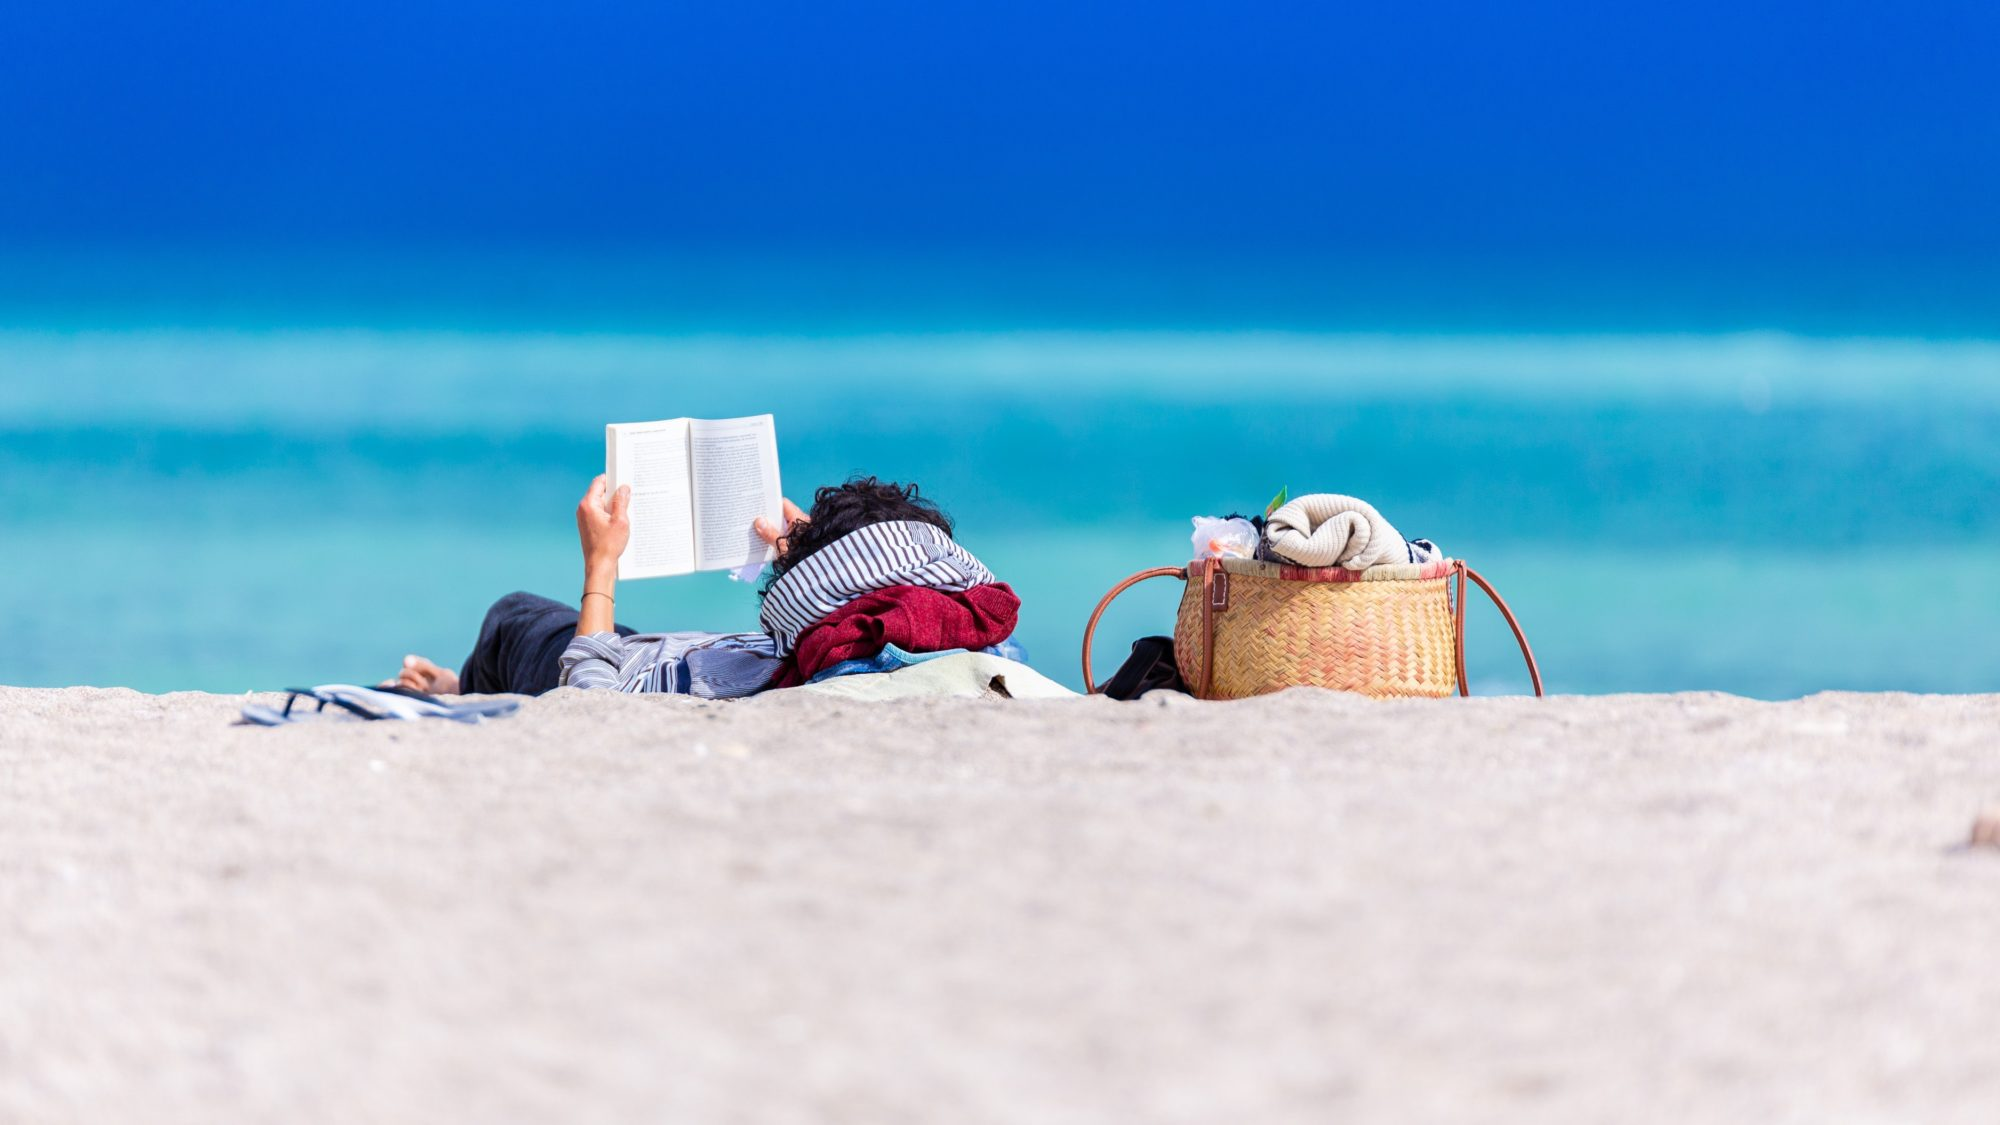 A person reads a book while reclining on a beach